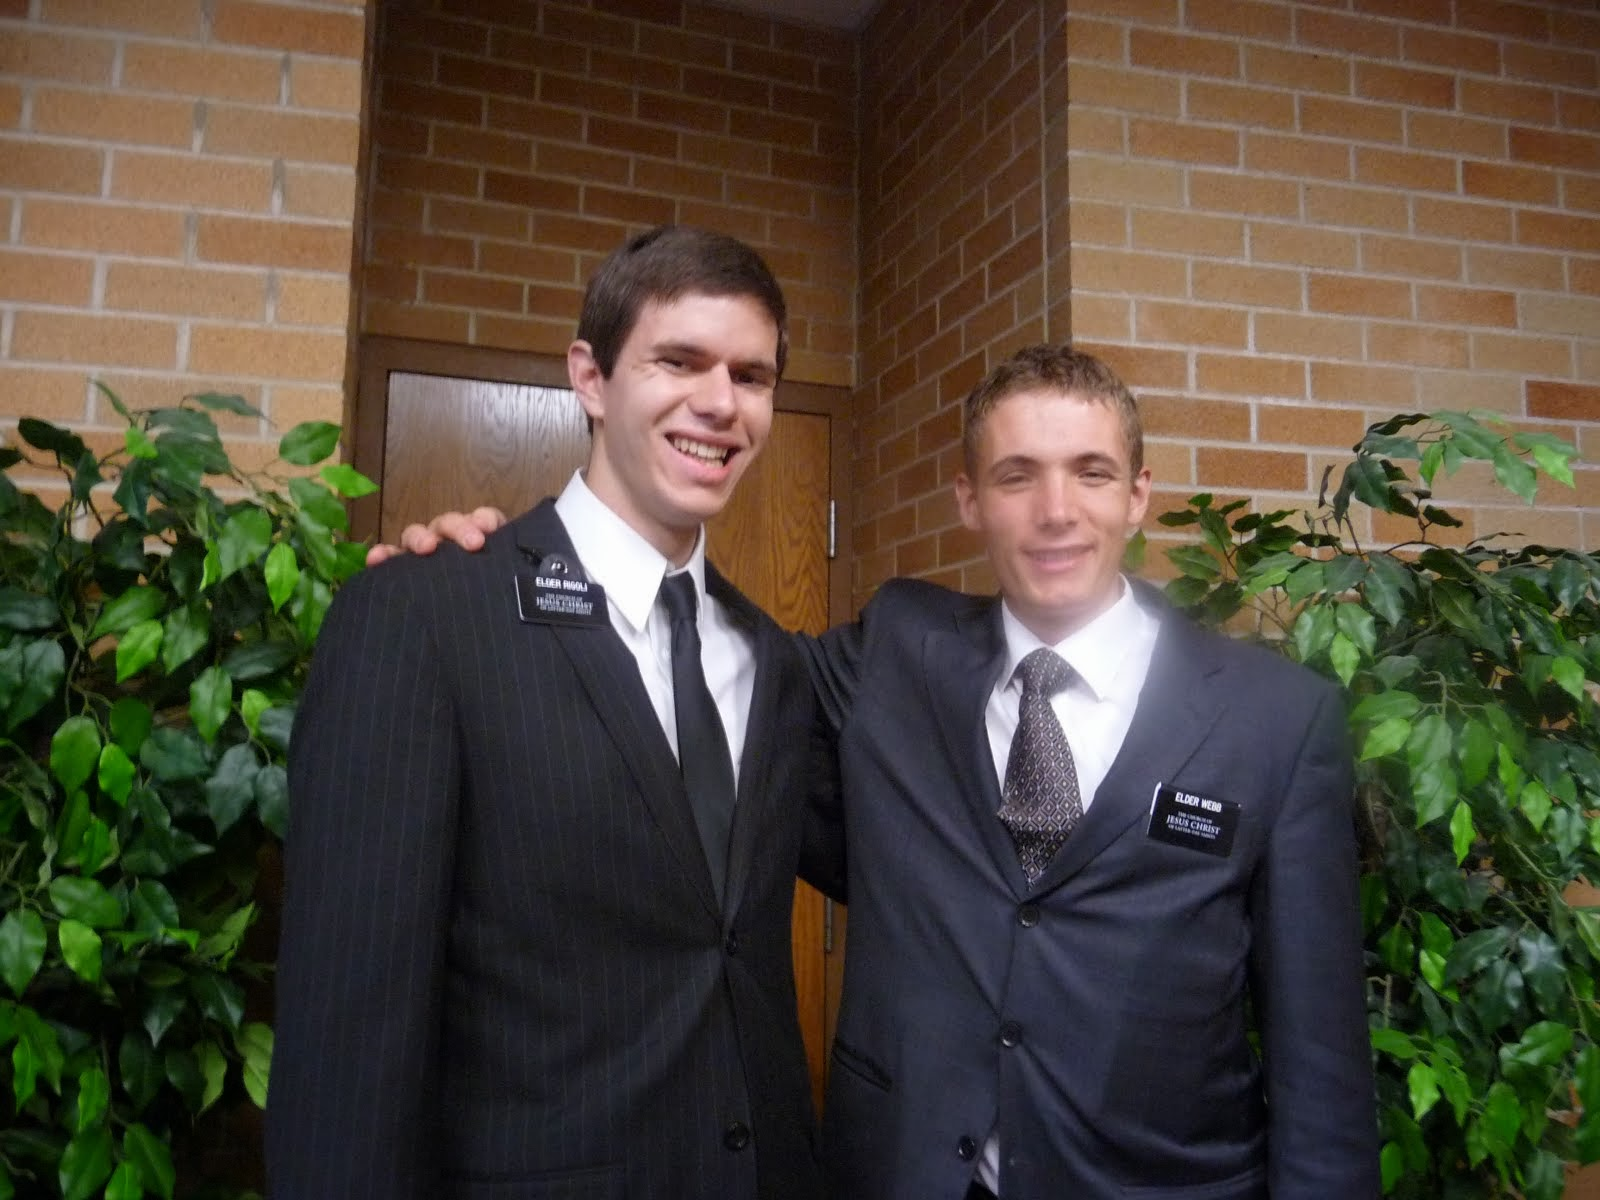 Elder Rigoli and Webb